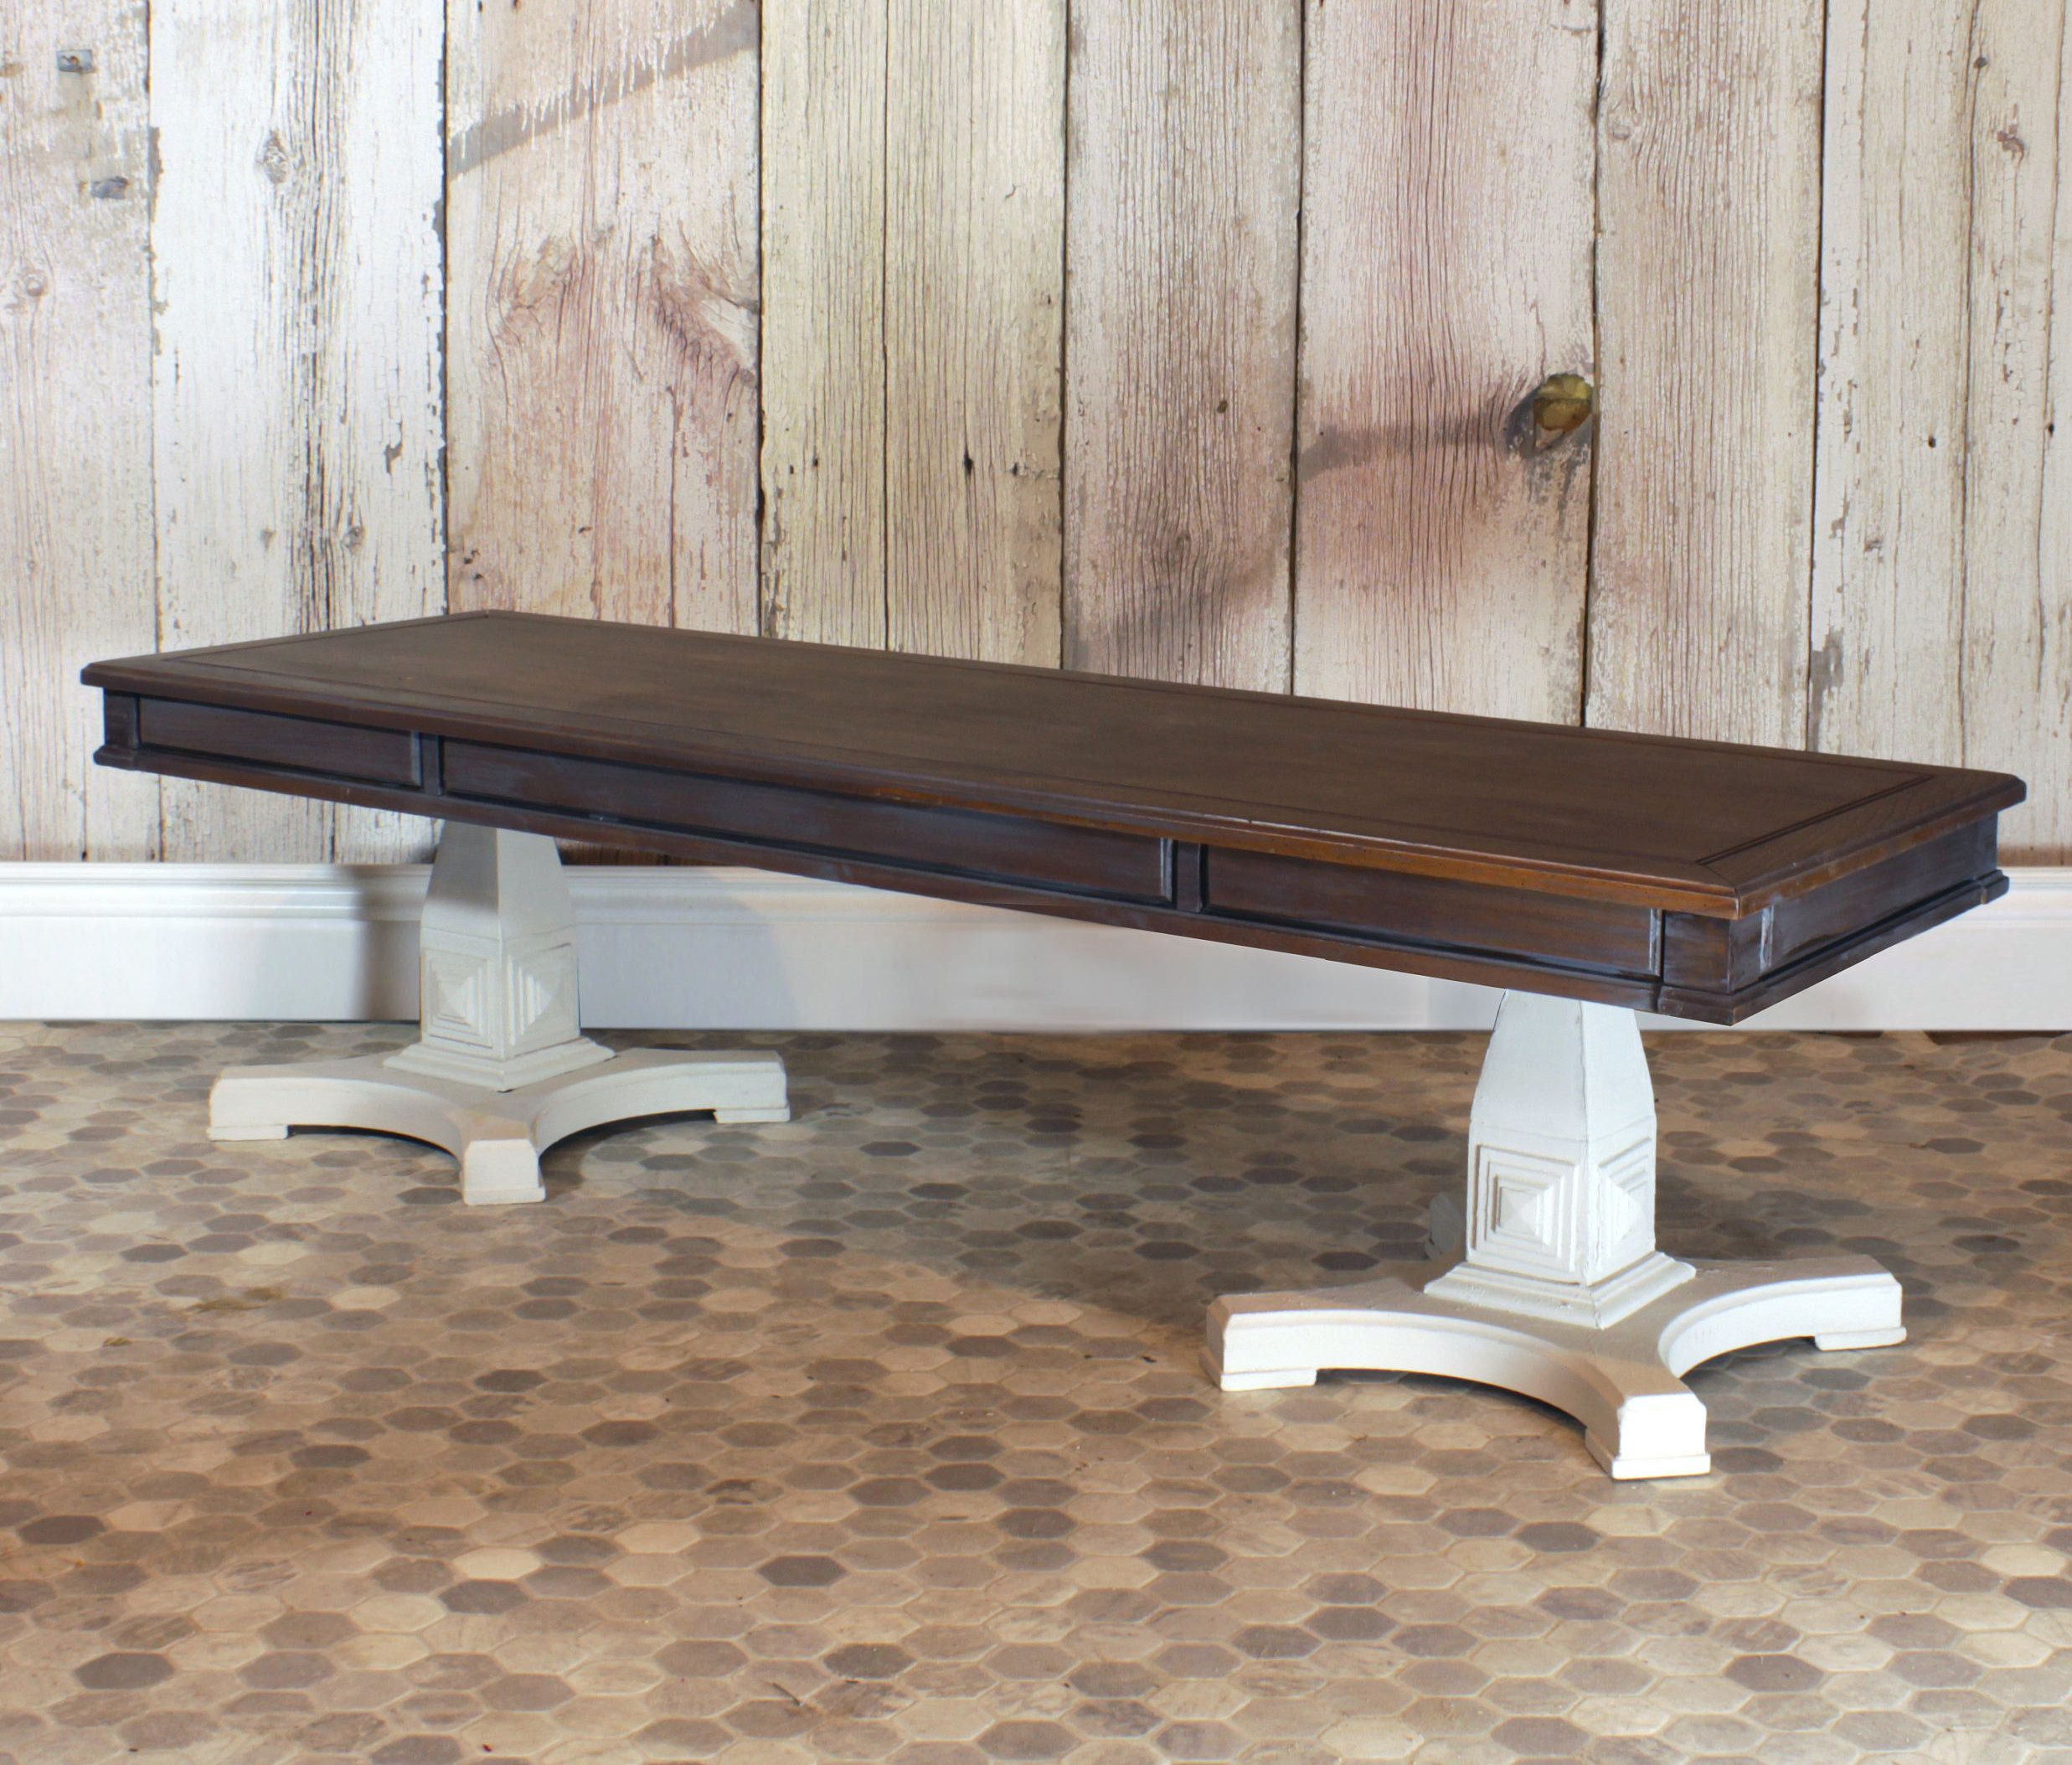 Rectangular Rustic Coffee Table Plaster Feet by